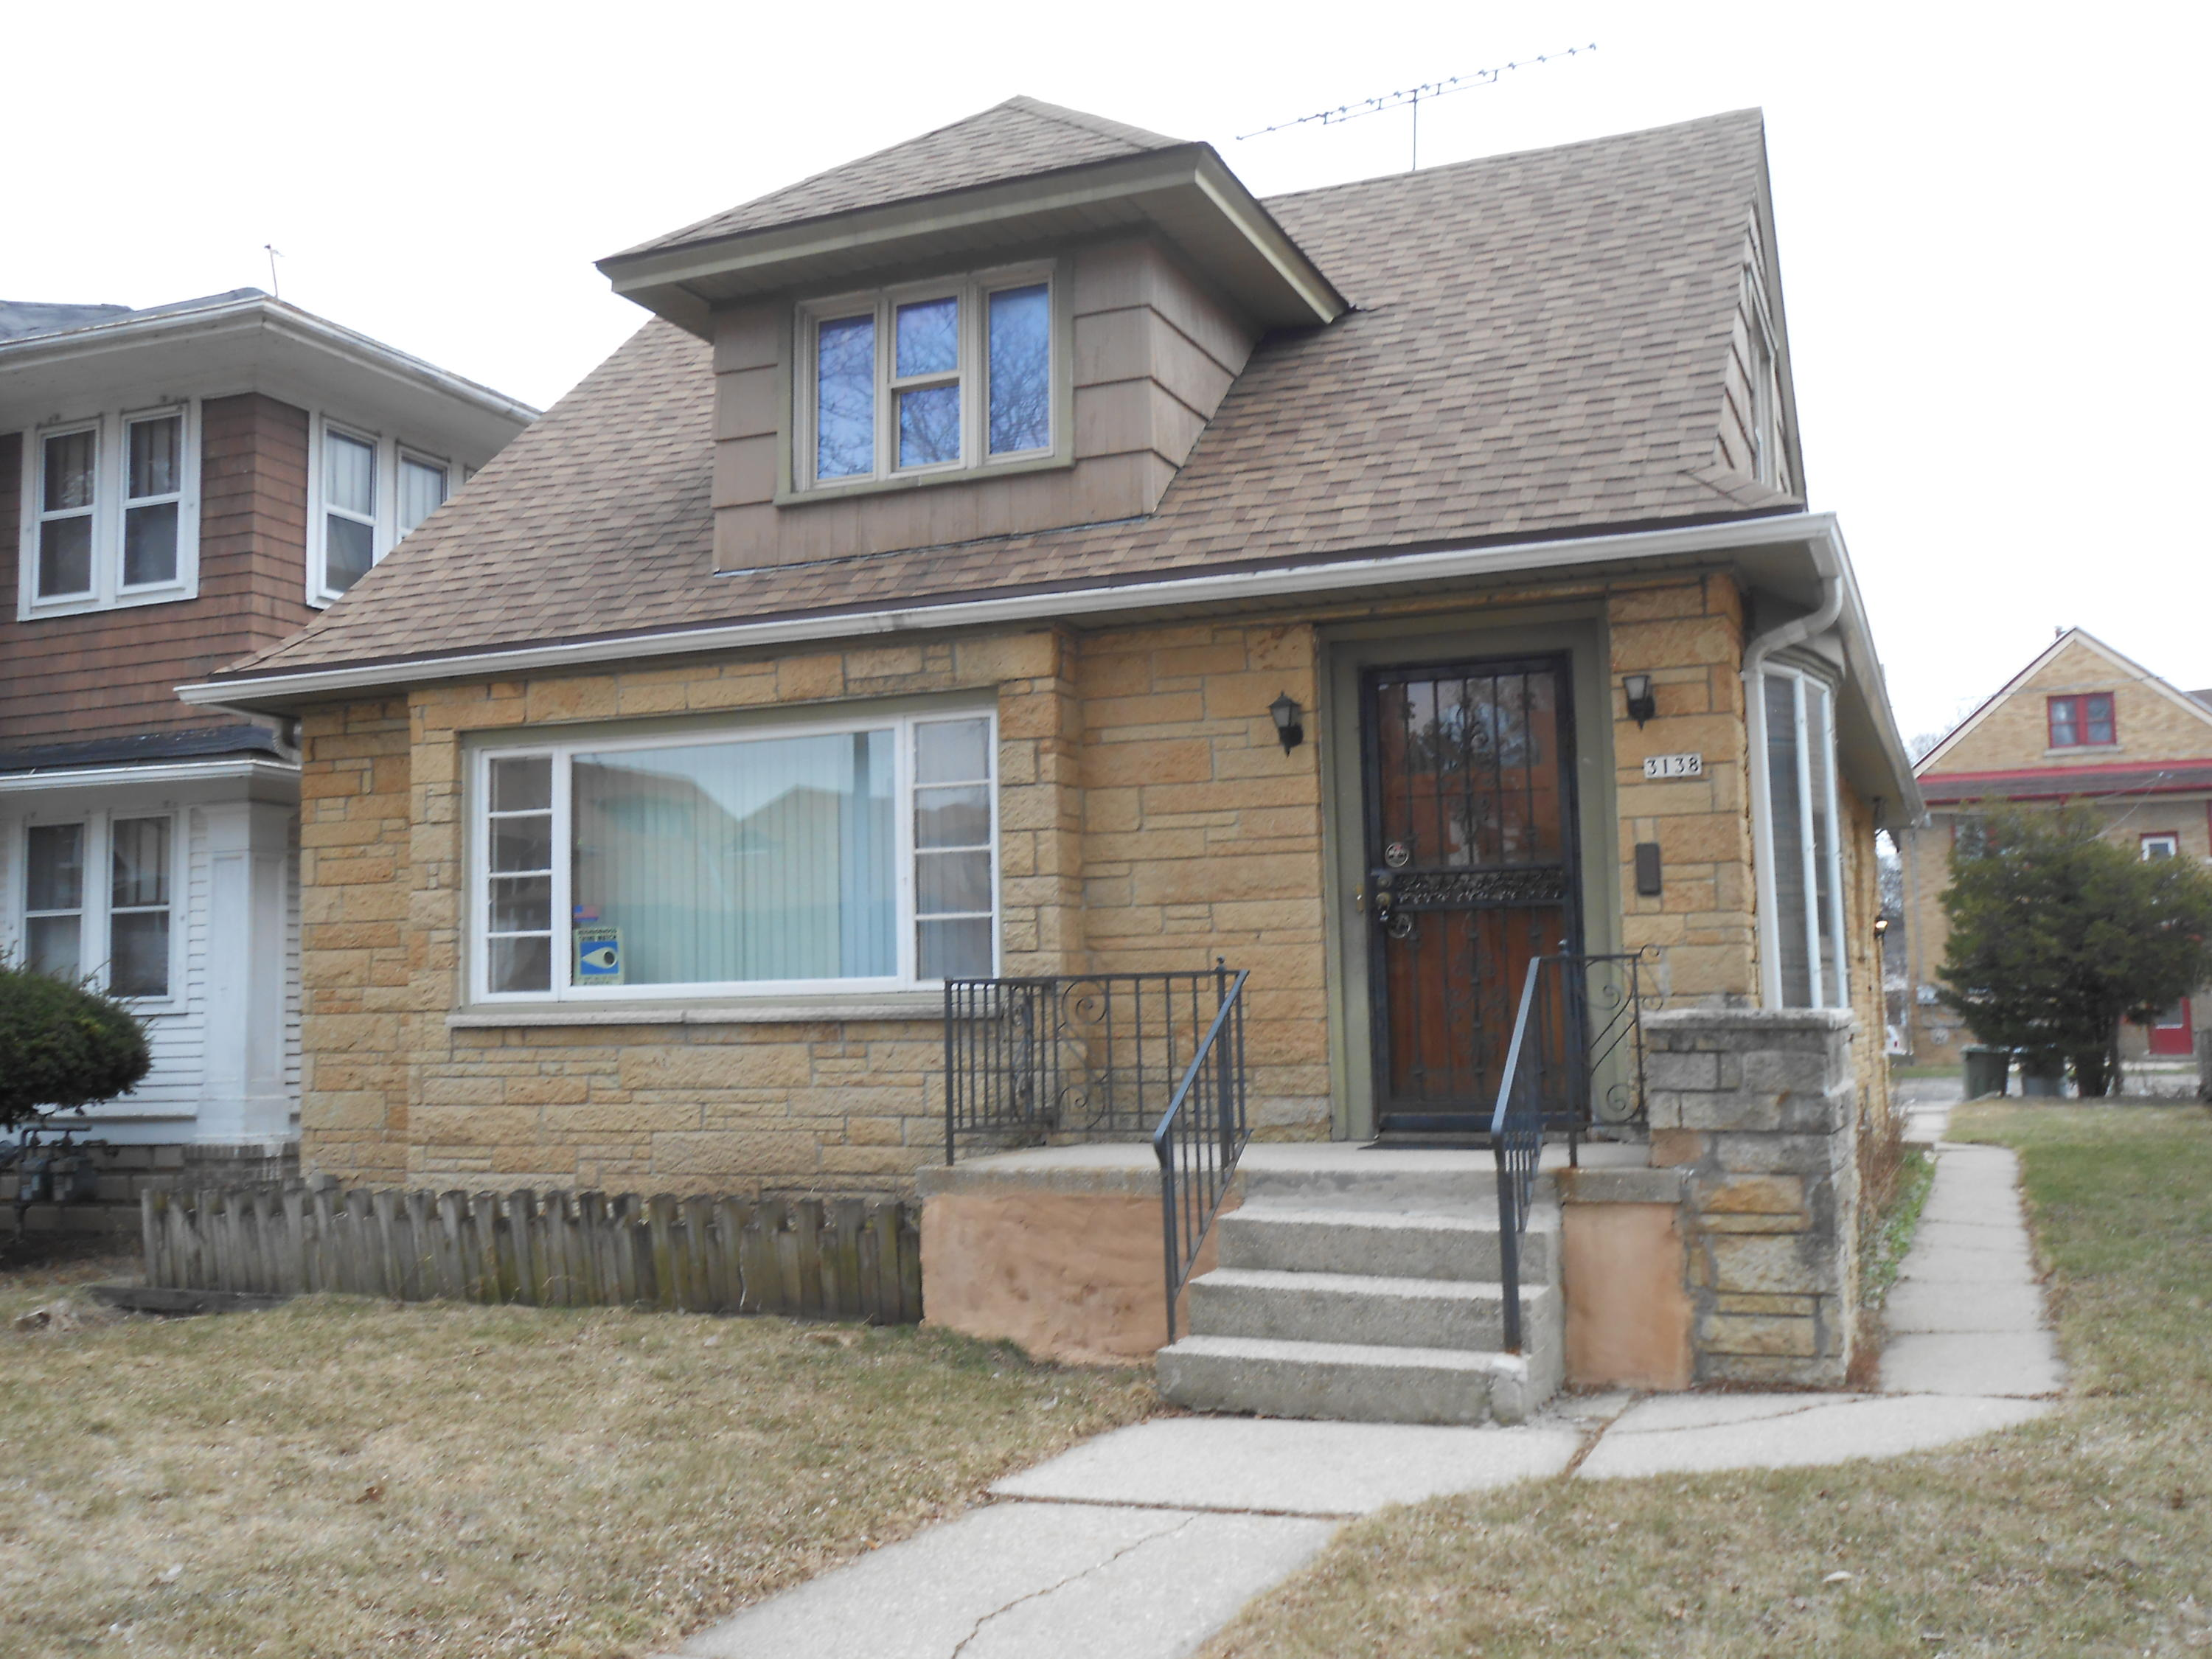 3138 44th St, Milwaukee, Wisconsin 53216, 4 Bedrooms Bedrooms, 8 Rooms Rooms,1 BathroomBathrooms,Single-Family,For Sale,44th St,1630163